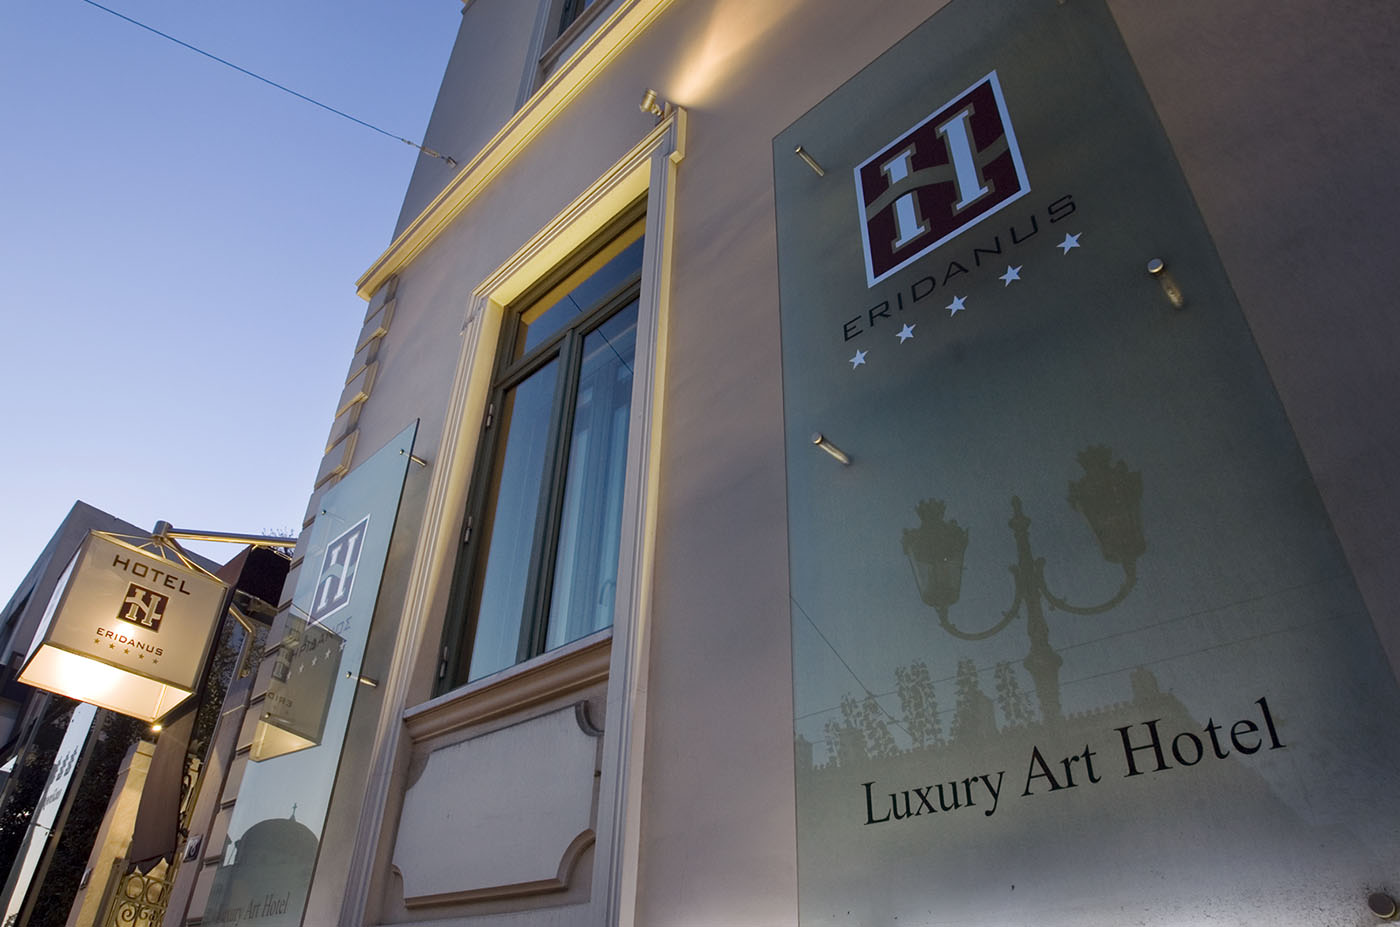 eridanus-luxury-art-hotel_62